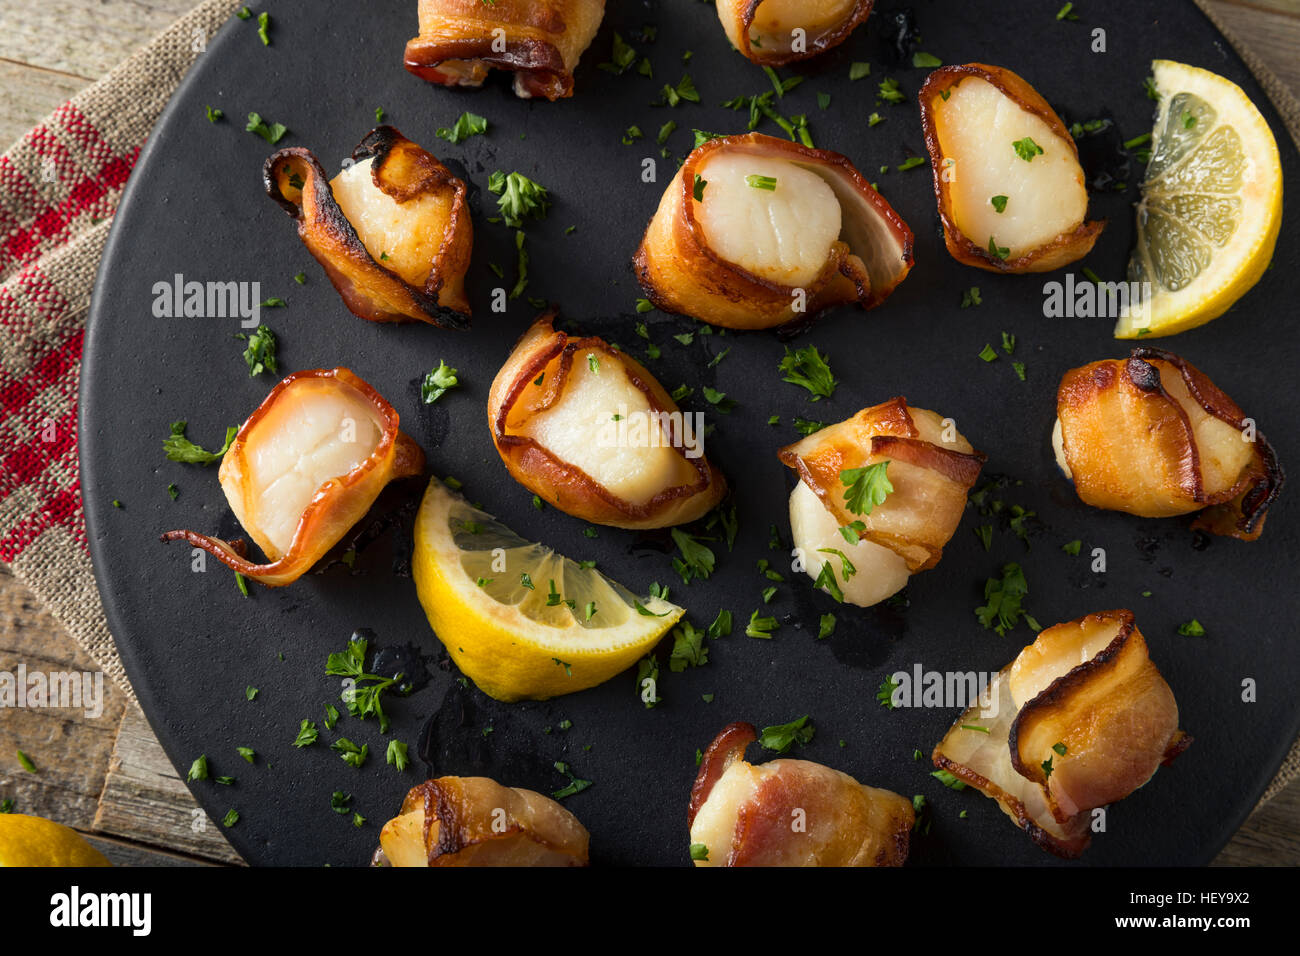 Homemade Bacon Wrapped Scallops with Salt and Pepper - Stock Image